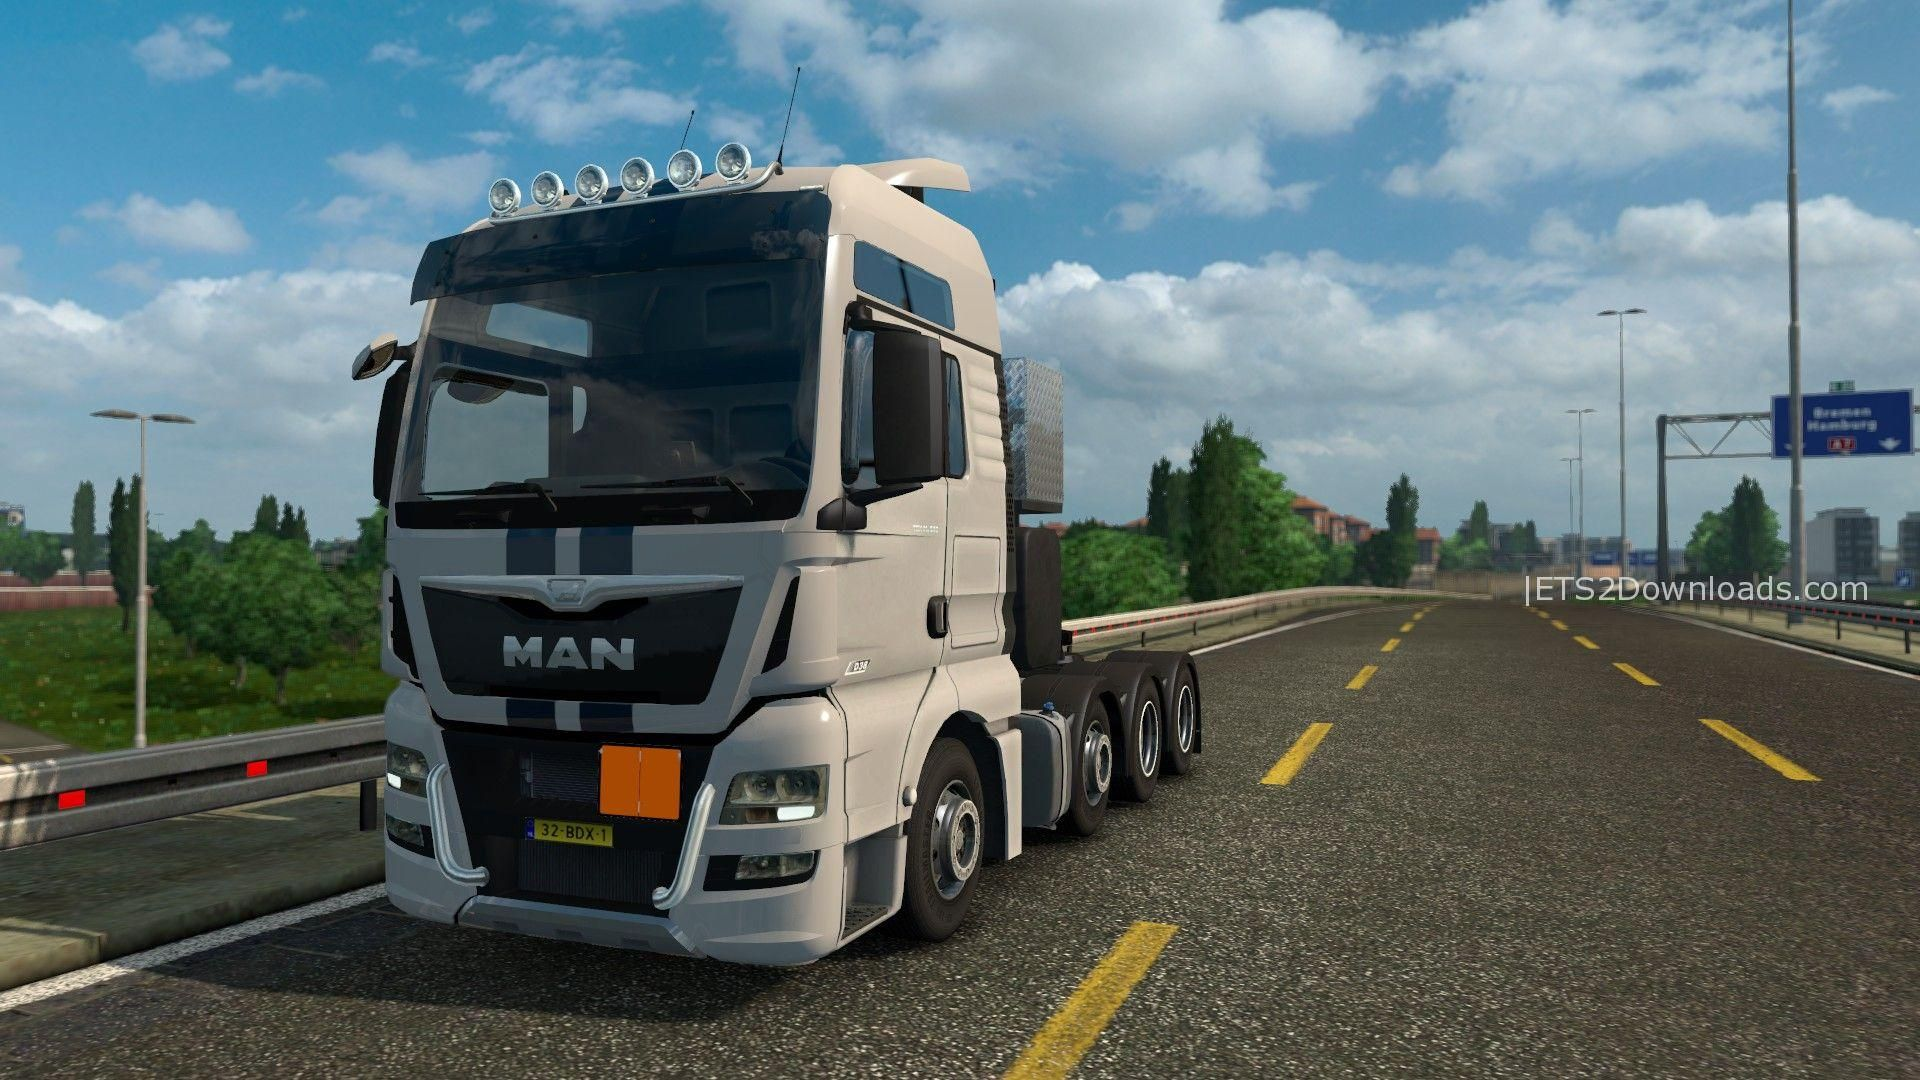 man tgx 8x4 10x4 v8 1 ets 2 mods ets2downloads. Black Bedroom Furniture Sets. Home Design Ideas